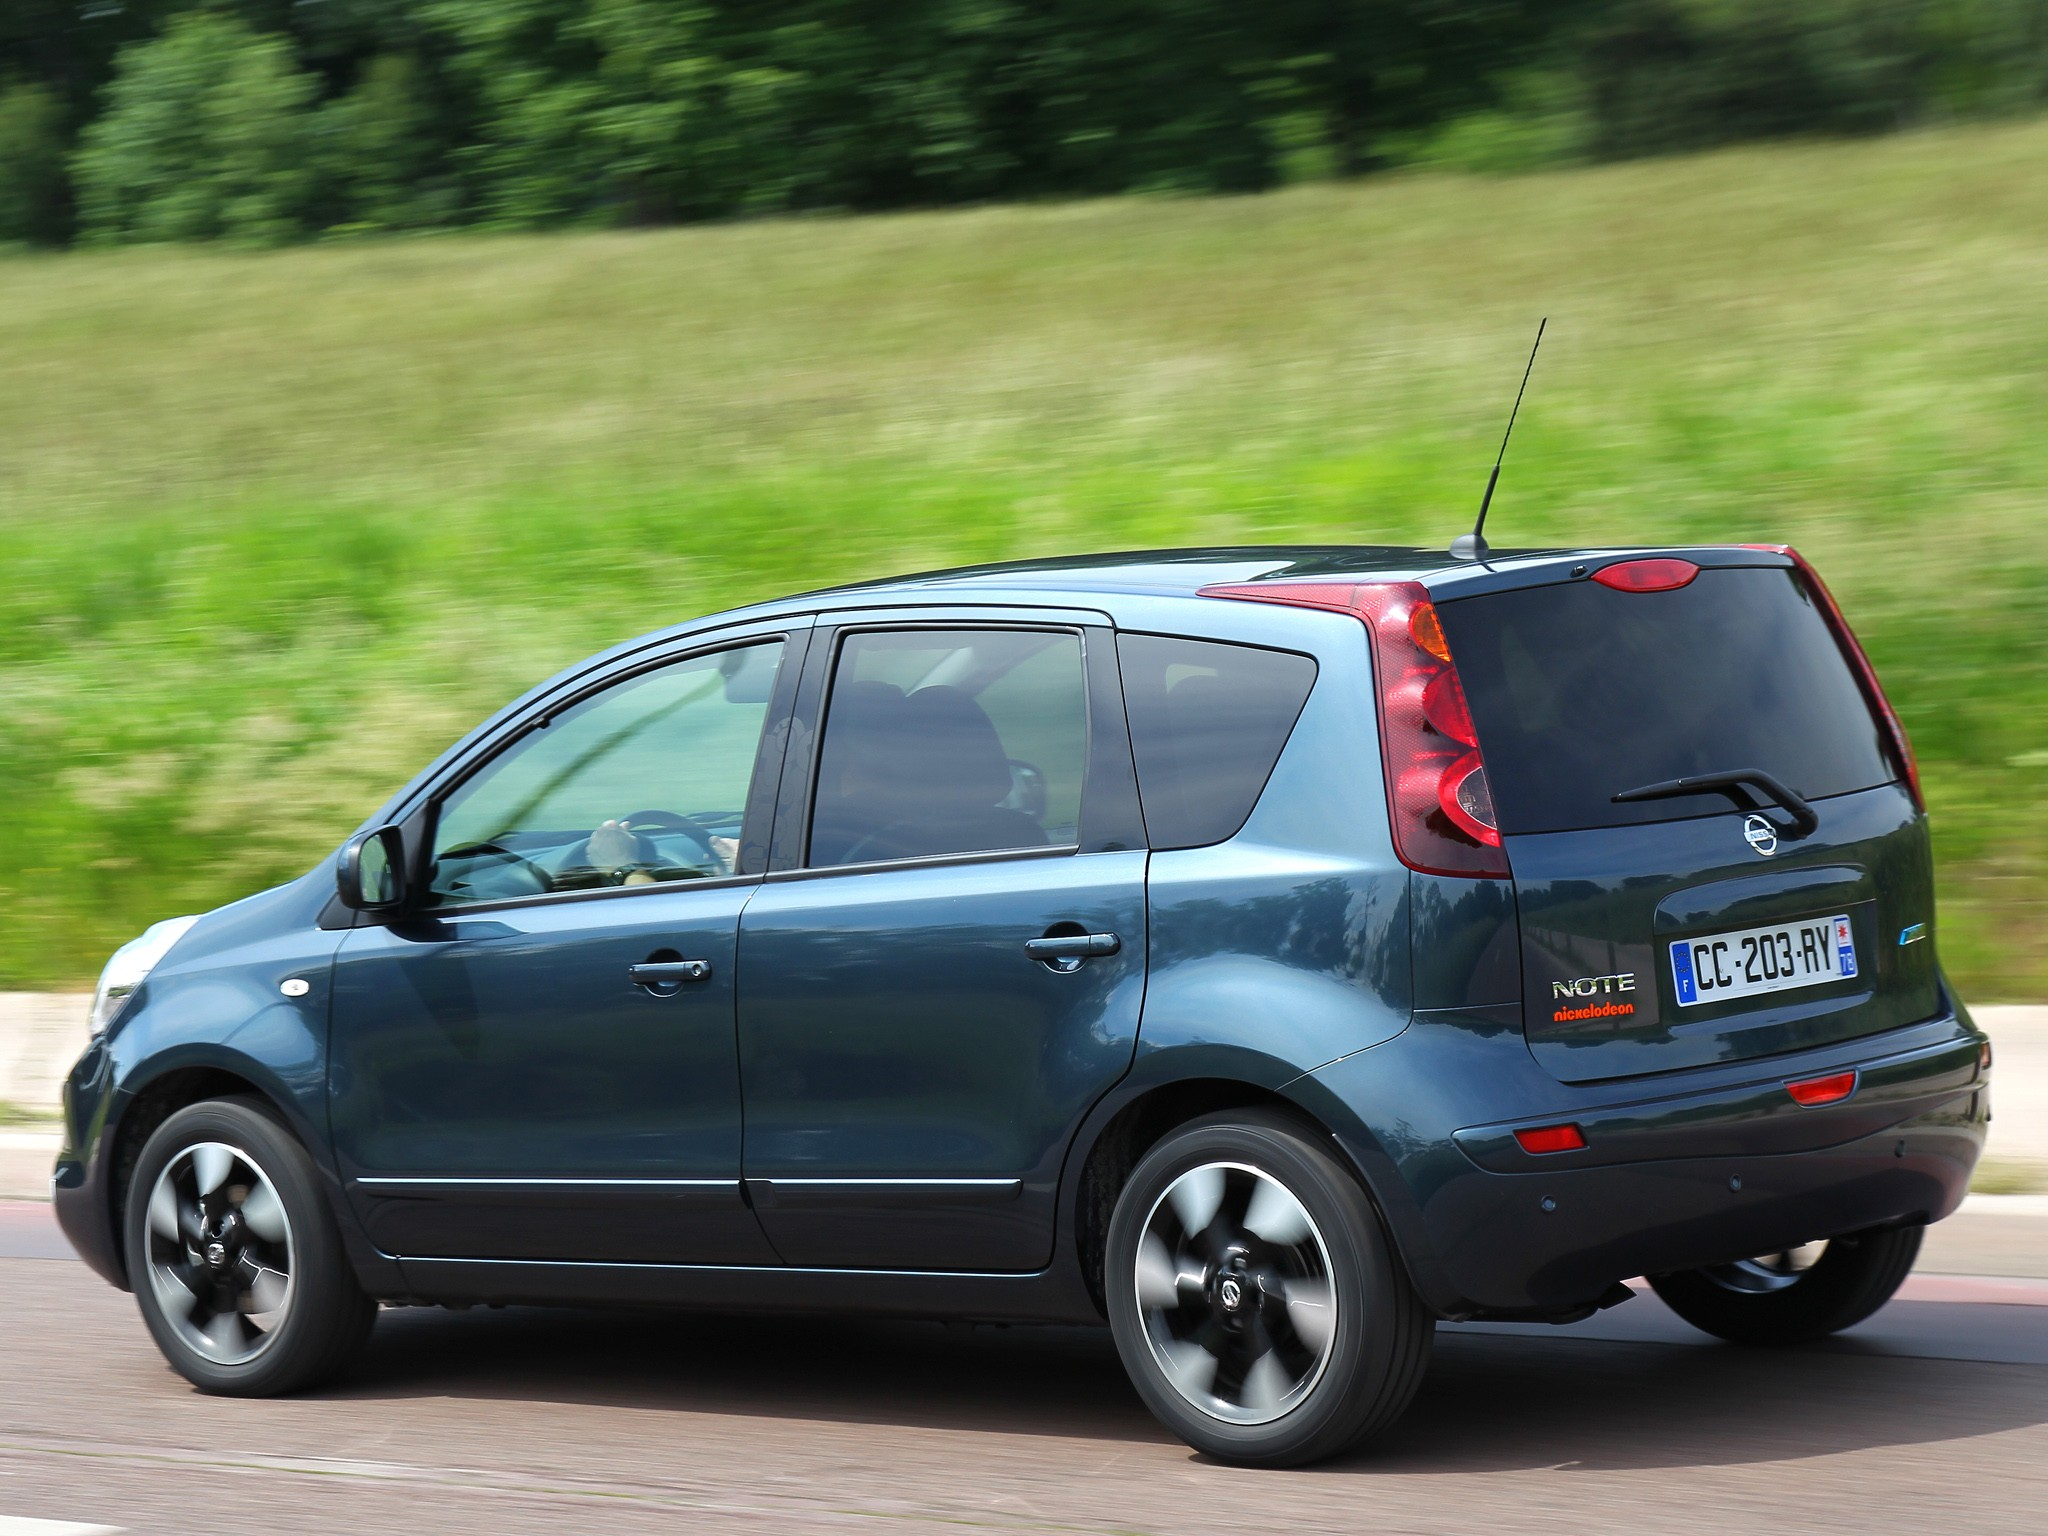 Nissan note photo - 5